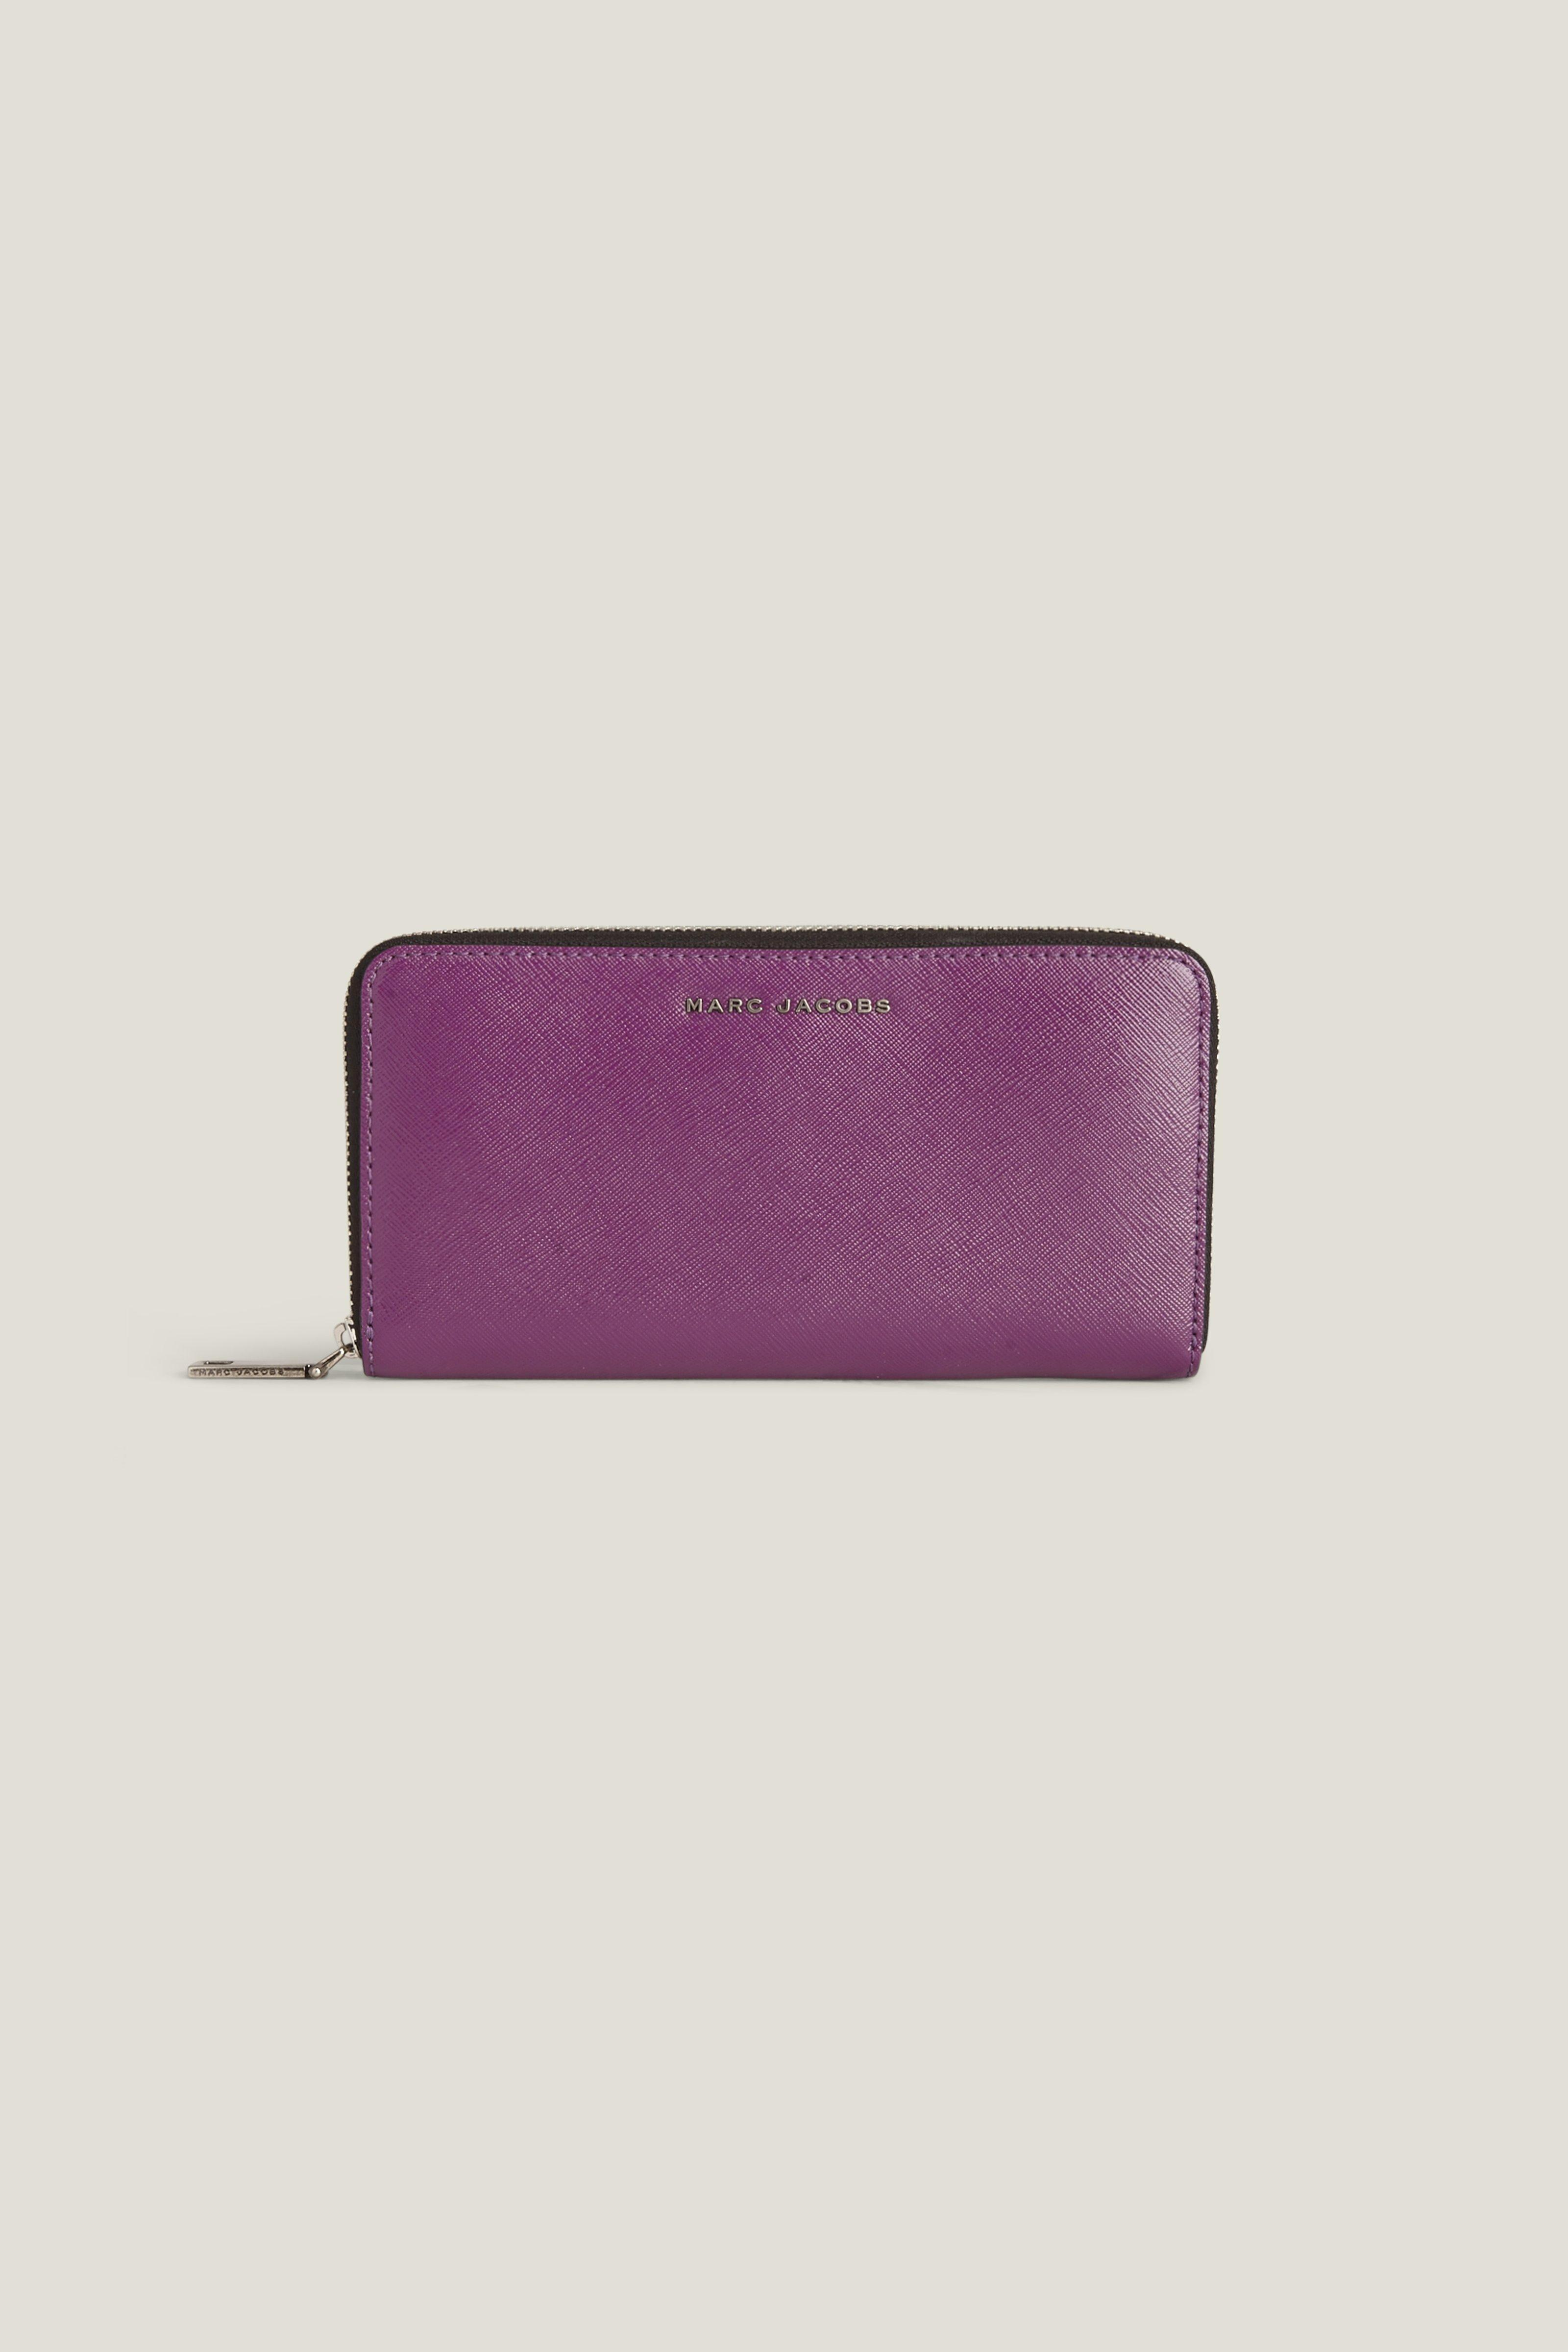 Marc Jacobs Saffiano Tricolor Standard Continental Wallet In Purple